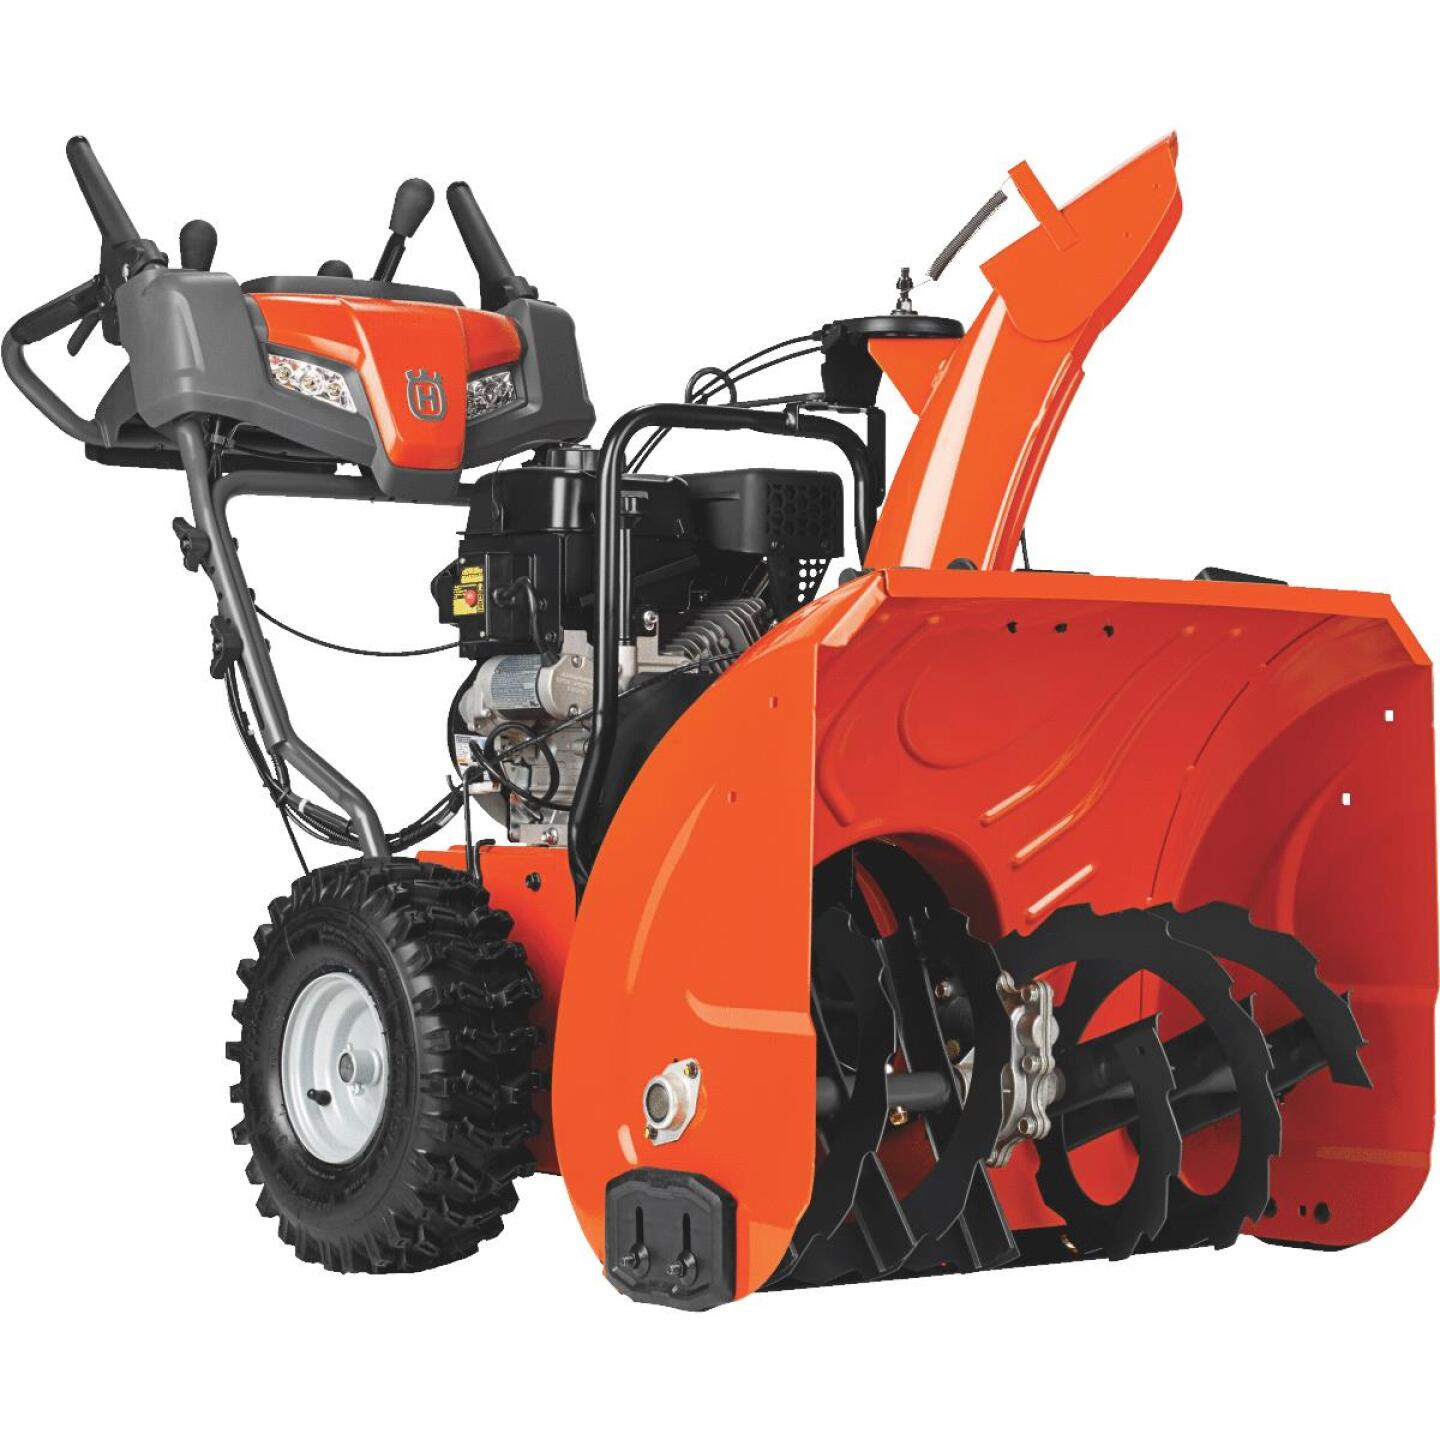 Husqvarna ST227P 27 In. 254cc 2-Stage Gas Snow Blower Image 1